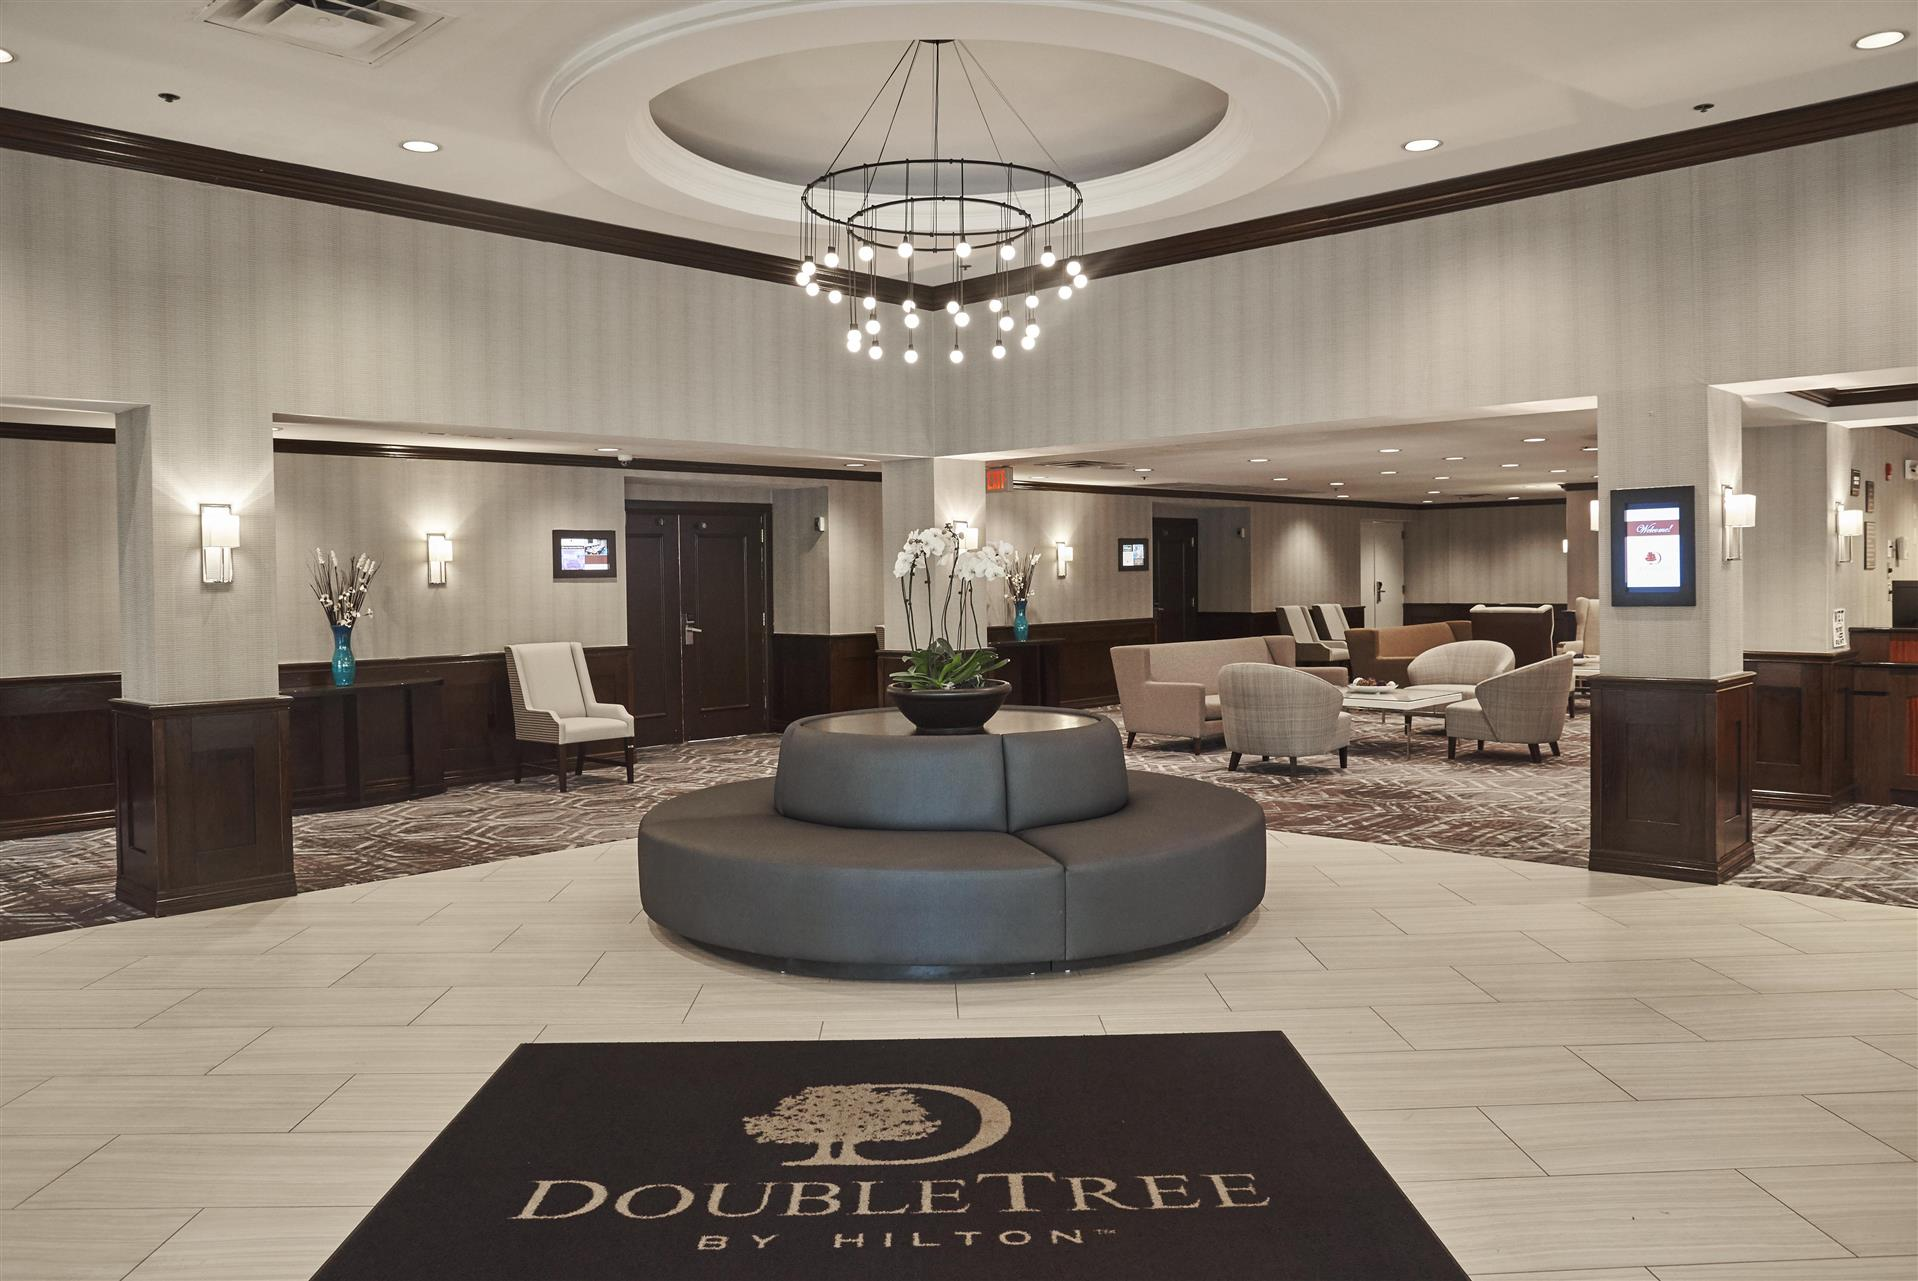 Meetings and events at Embassy Suites by Hilton Parsippany